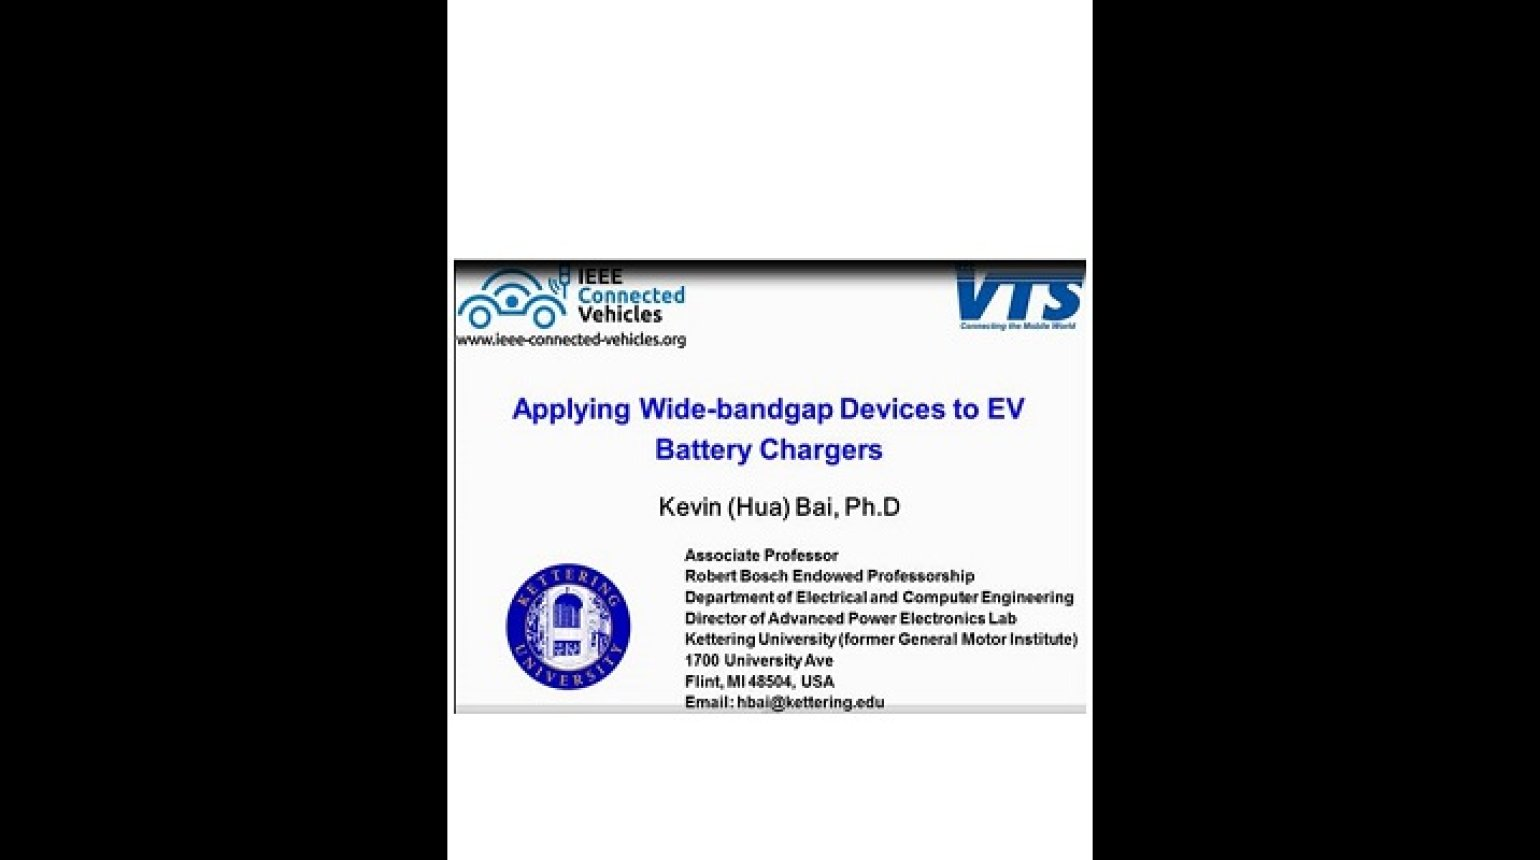 Video - Applying Wide-bandgap Devices to EV Battery Charges